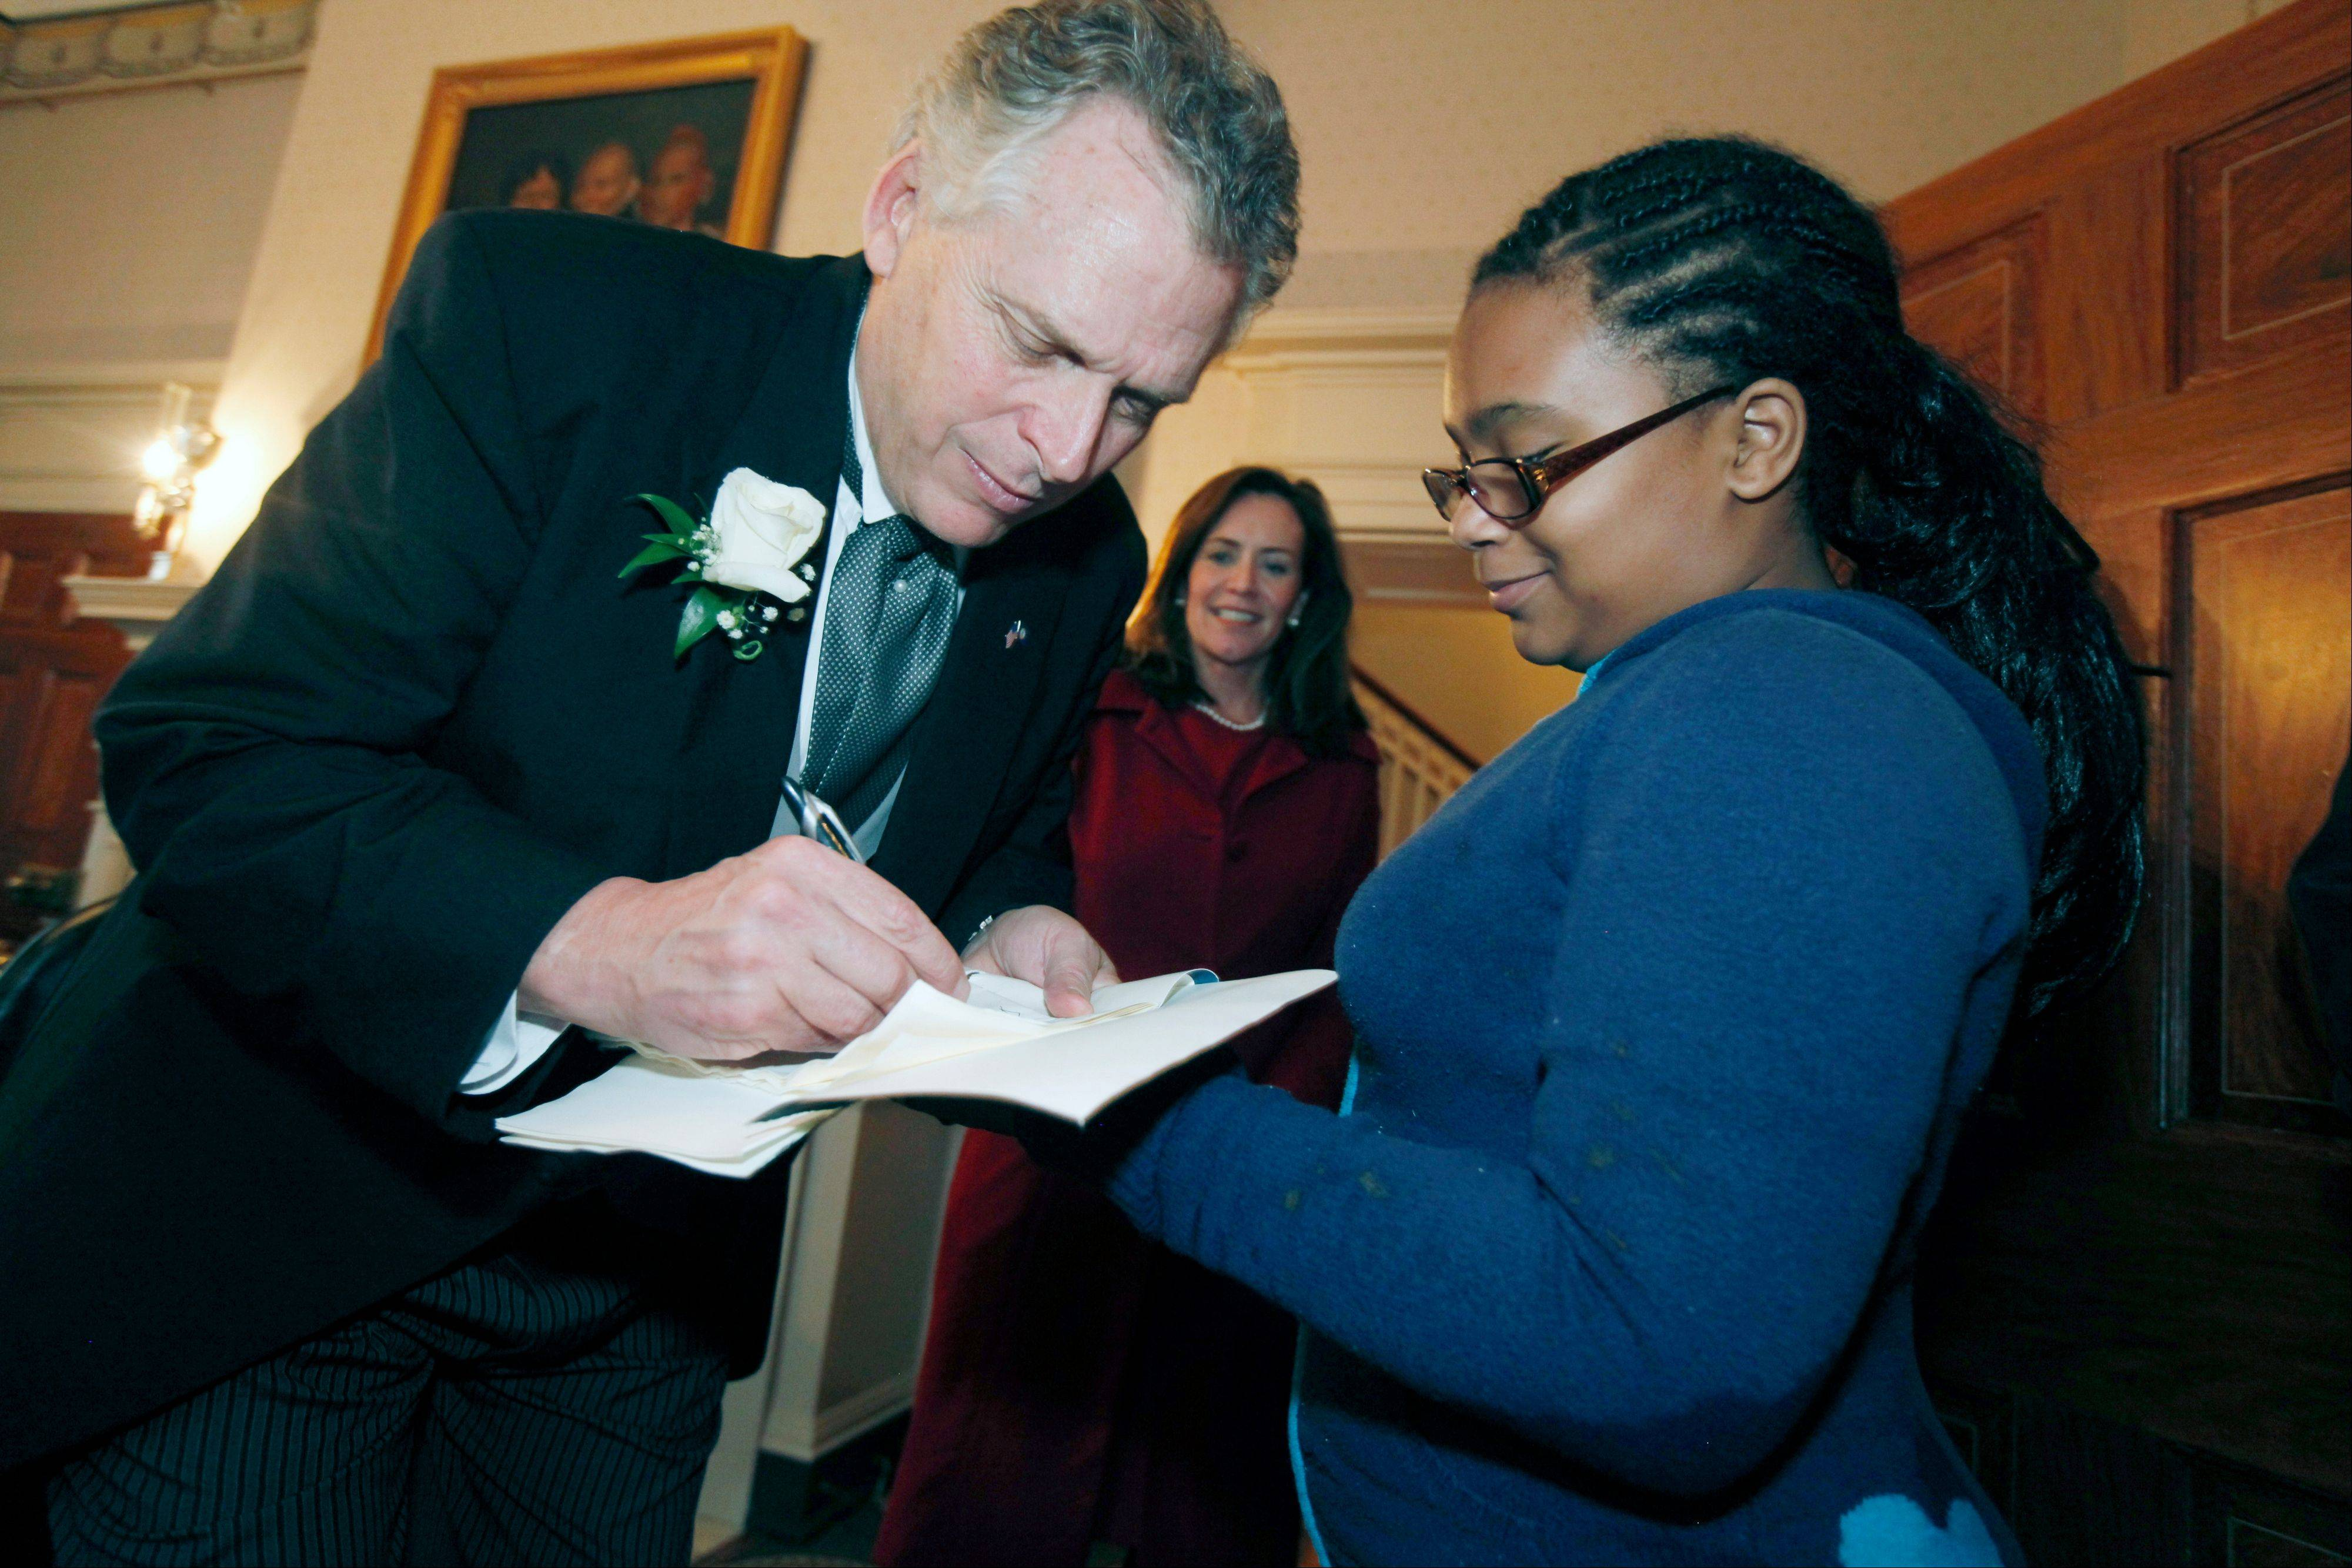 Governor Terry McAuliffe signs an autograph Saturday for Daisa Bridges, 12, as McAuliffe�s wife Dorothy, center, looks on during an open house at the Executive Mansion in Richmond, Va.